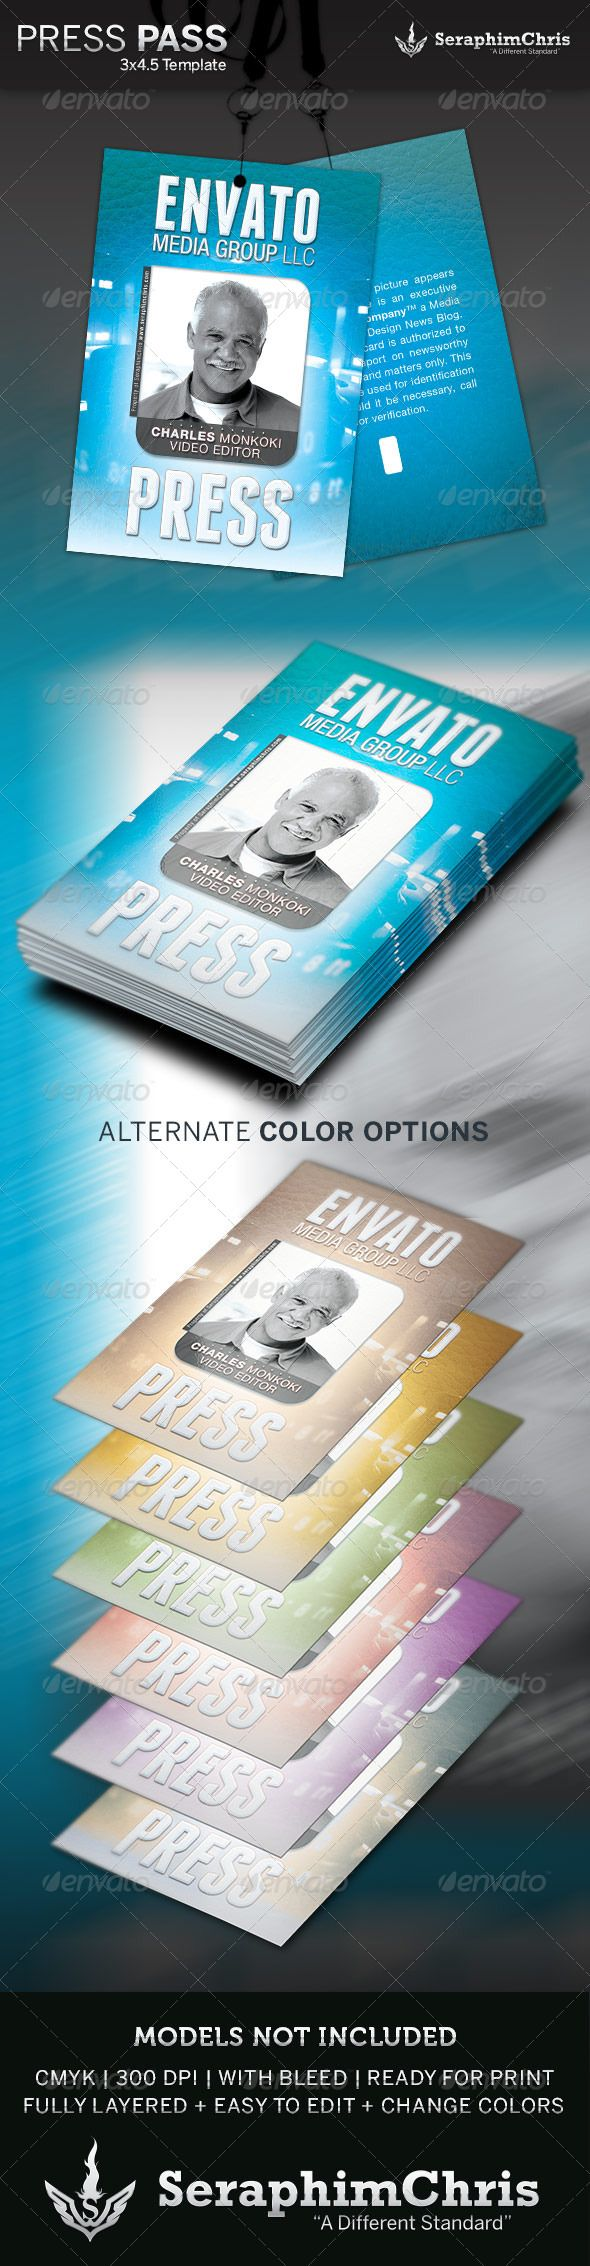 9 best Press Pass template images on Pinterest | Font logo, Print ...